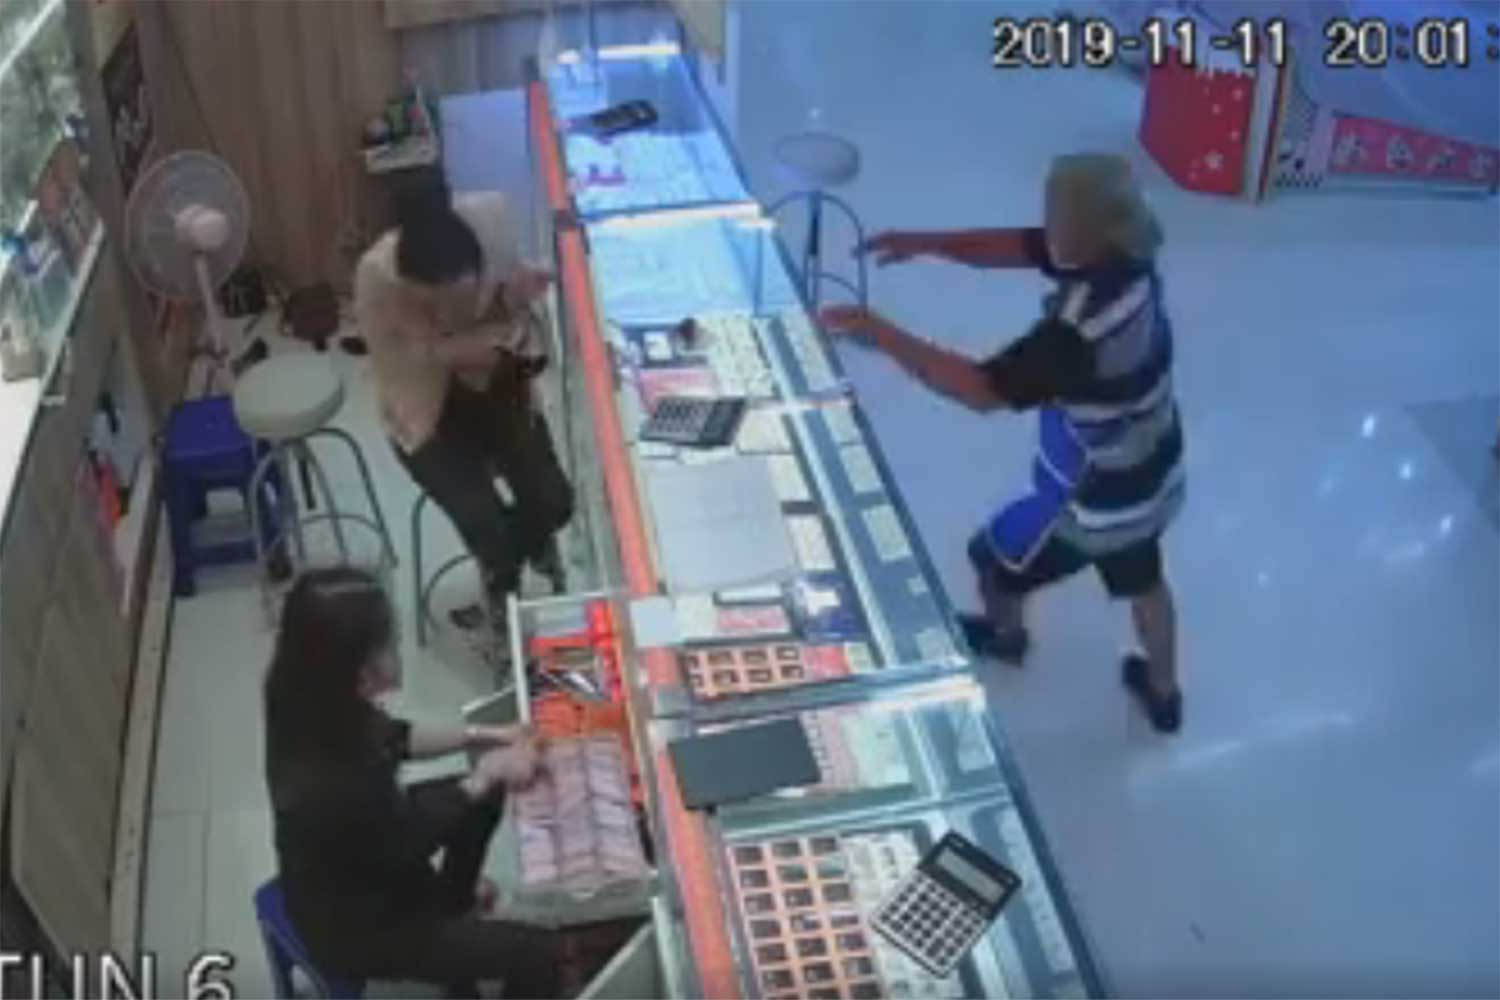 A lone man throws stones to smash display cabinets and steal gold from a shop at a Tesco Lotus superstore in Udon Thani on Monday night. (From video on ๑udonthaniupdate Facebook page)